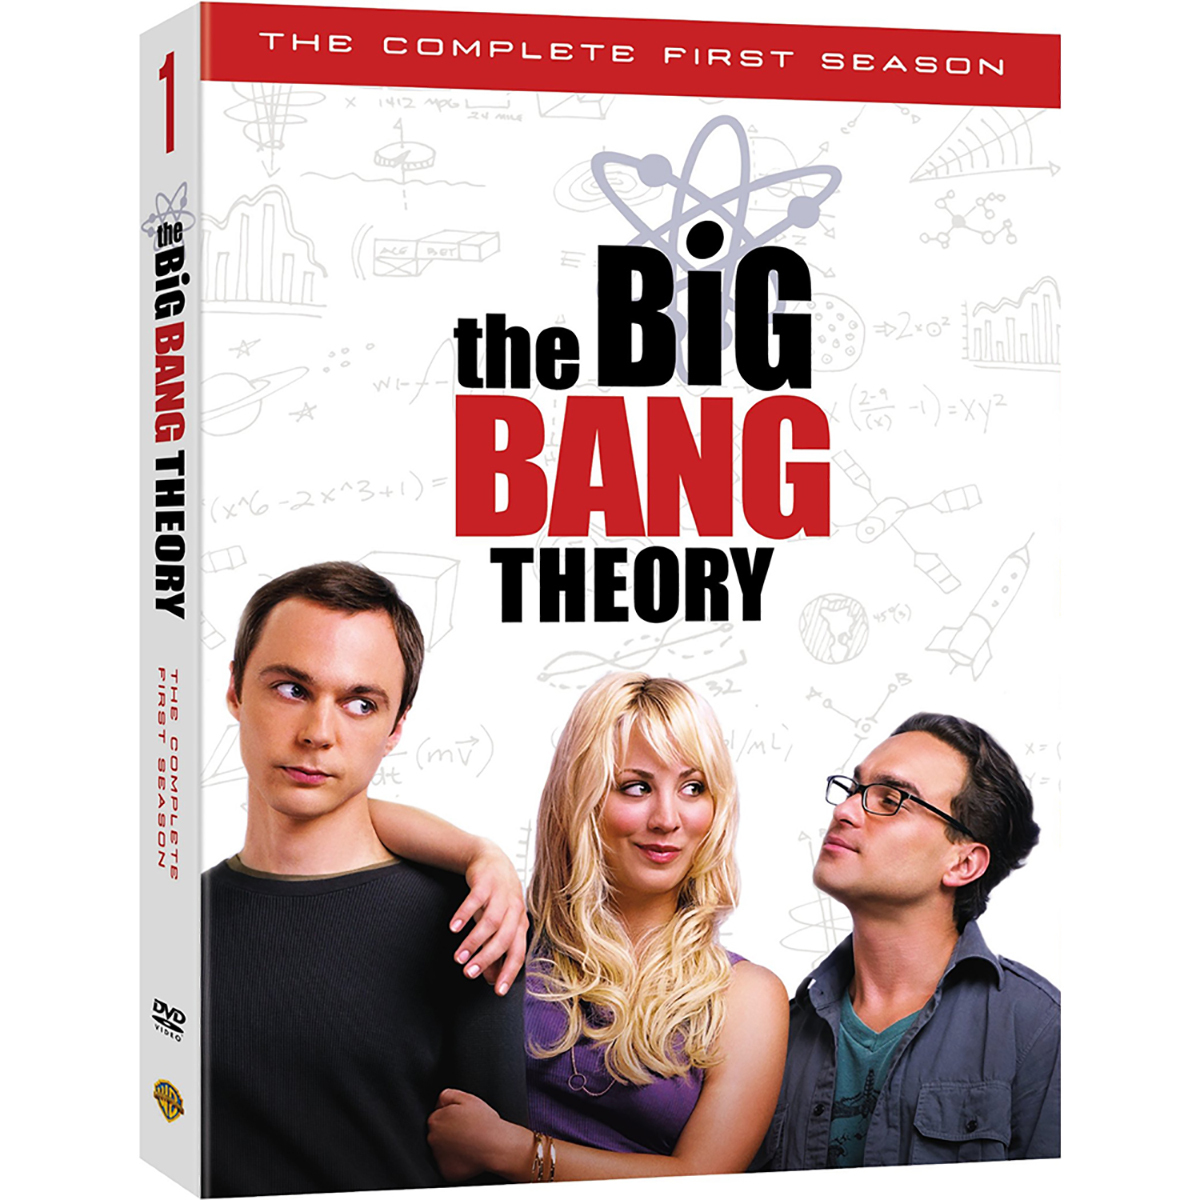 The Big Bang Theory: Season 1 DVD -  DVDs & Videos 4285-111037